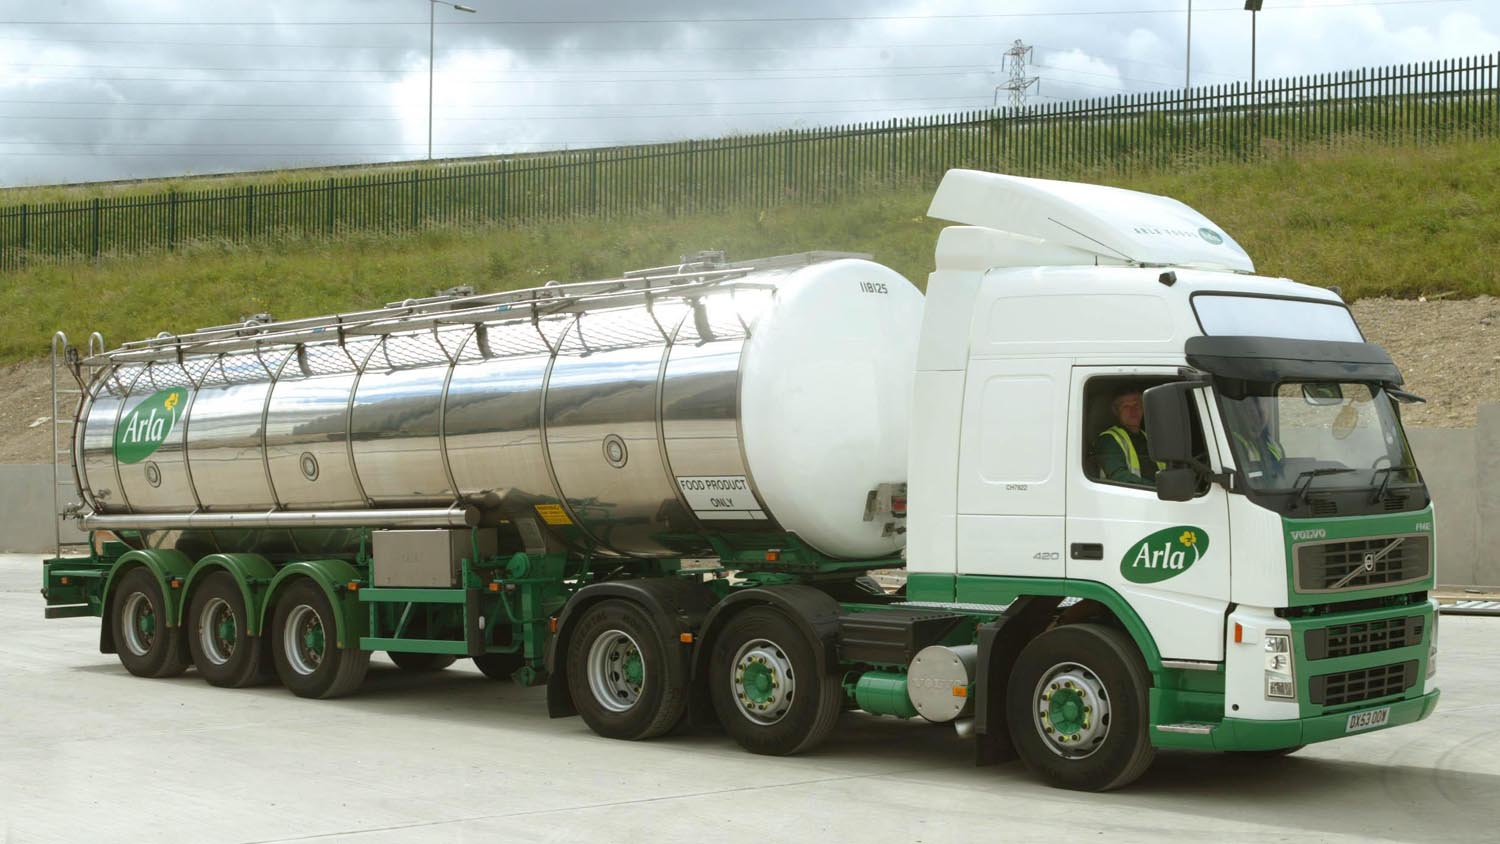 Arla Direct suppliers handed 12 months' notice